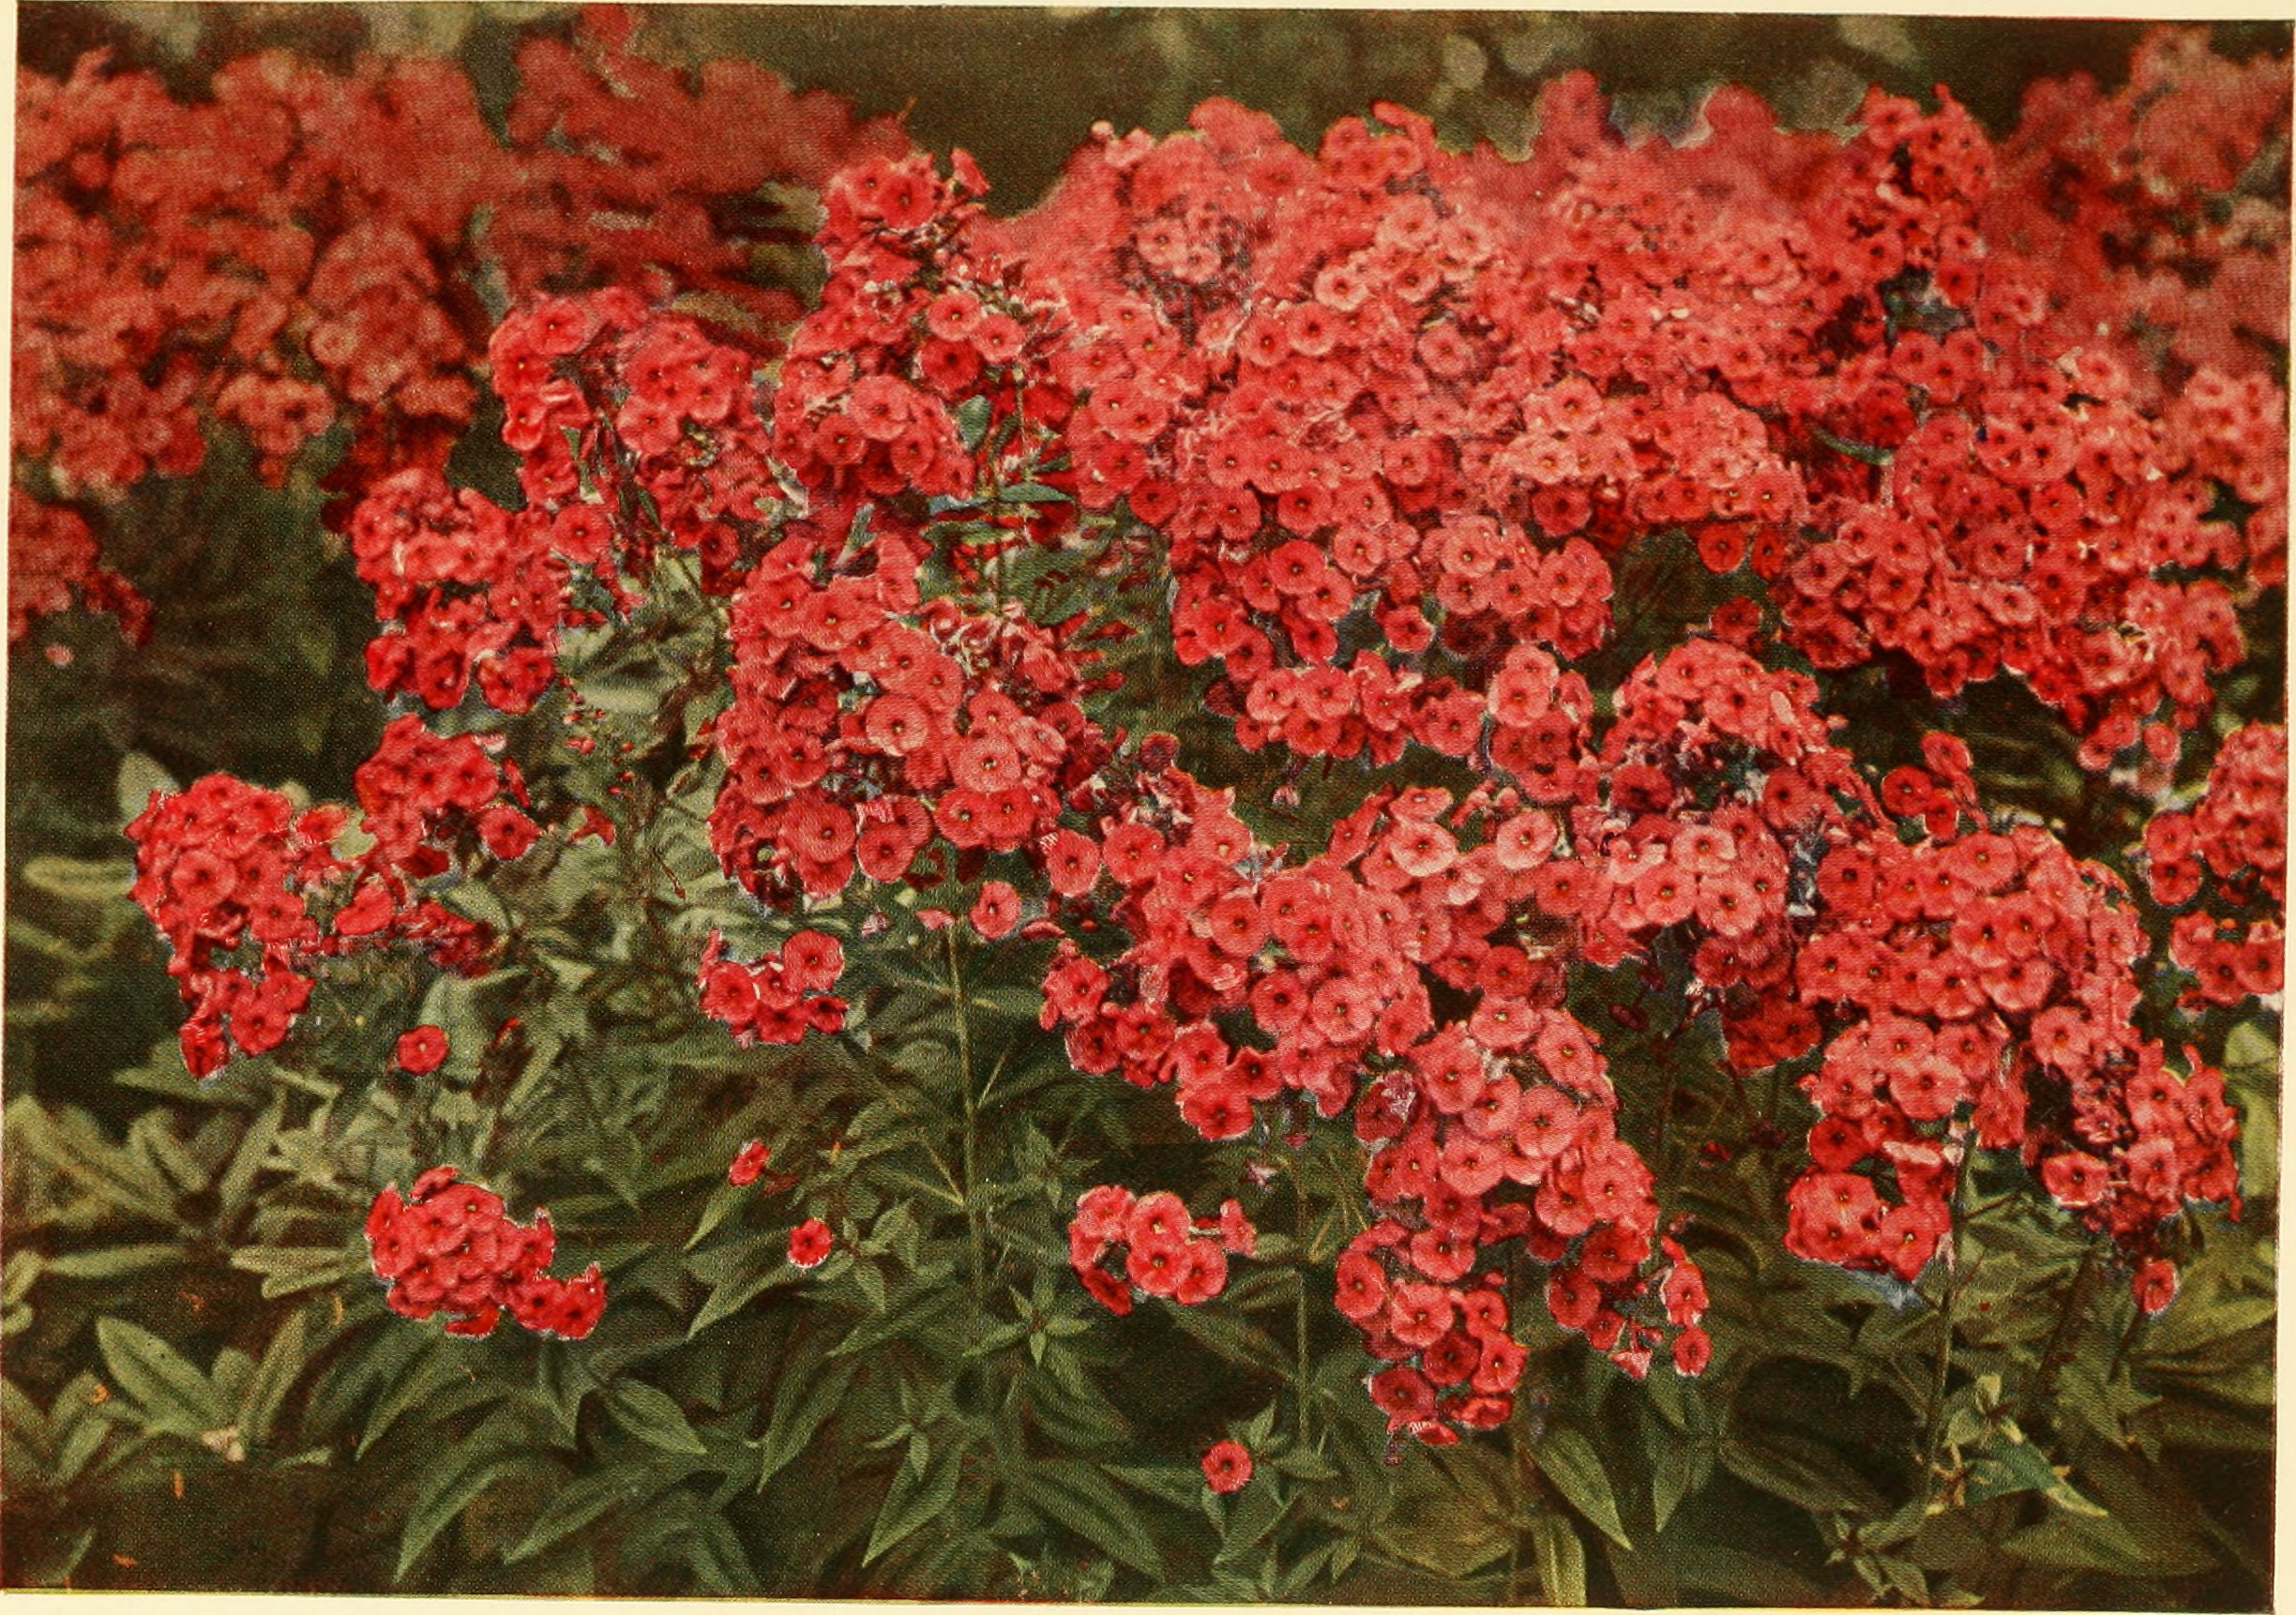 Filethe book of hardy flowers a simple and complete descriptive filethe book of hardy flowers a simple and complete descriptive guide to the cultivation in gardens of the trees and shrubs perennial and annual flowers izmirmasajfo